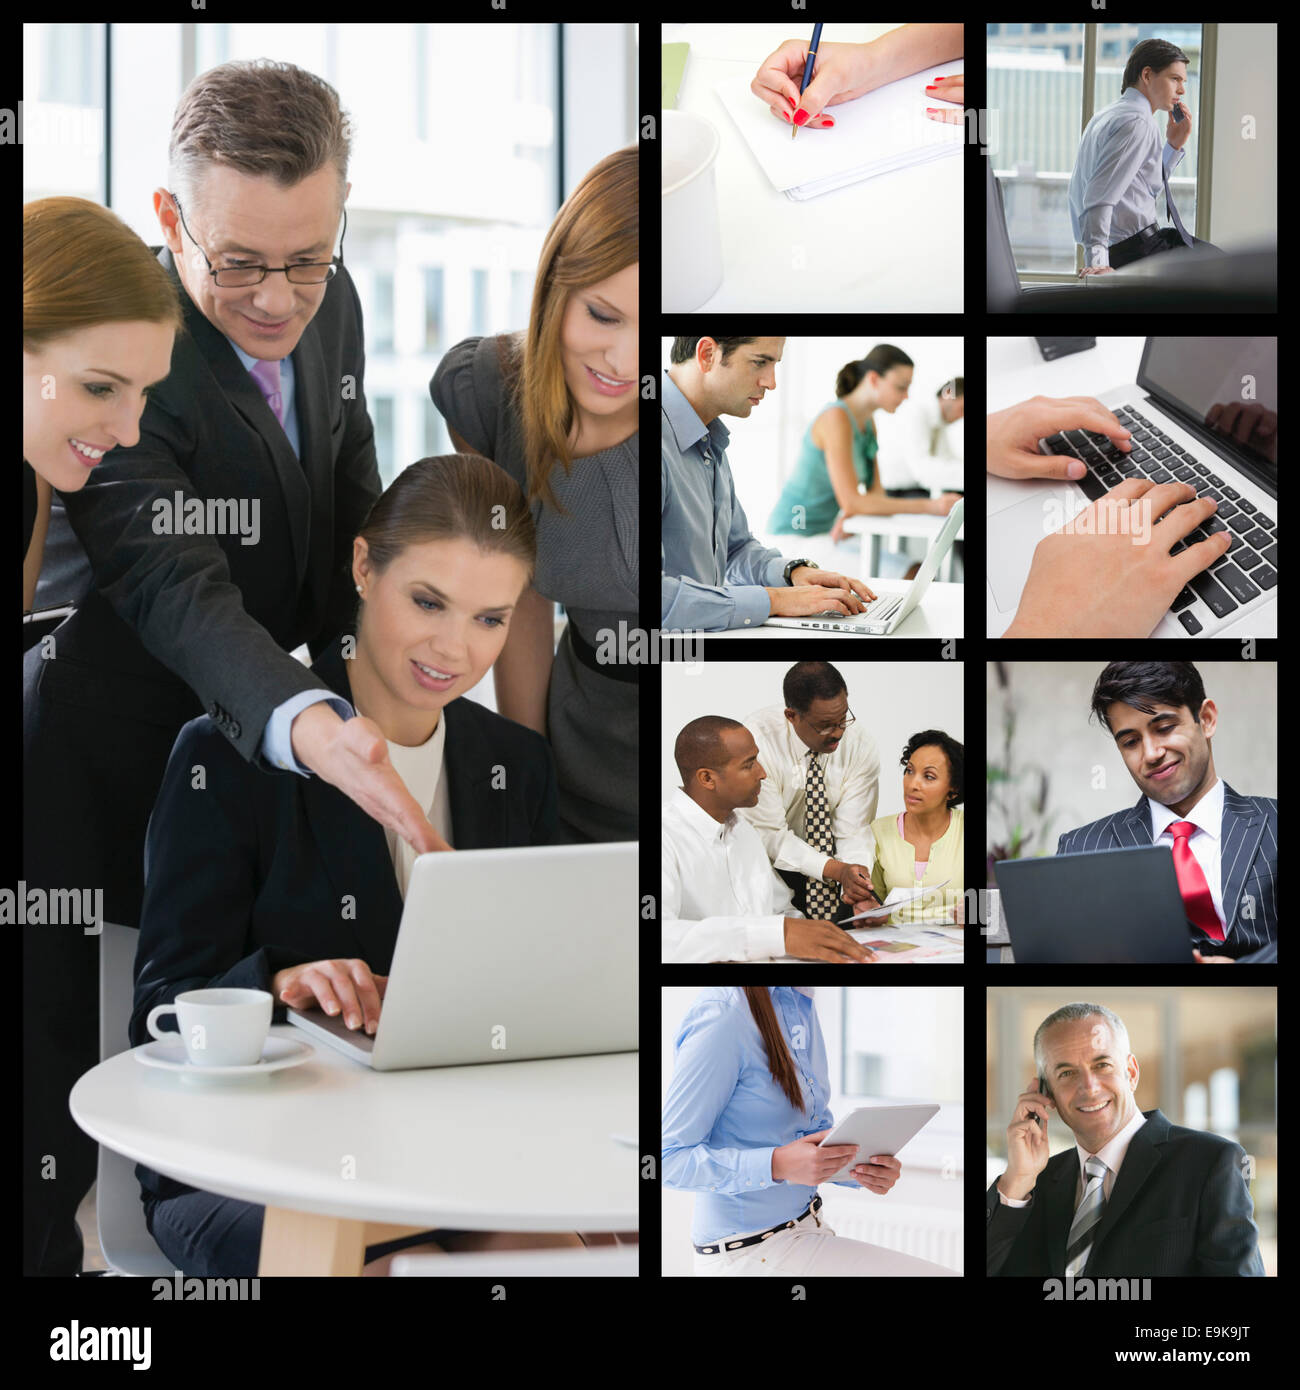 Computer imaging of business people working in office - Stock Image